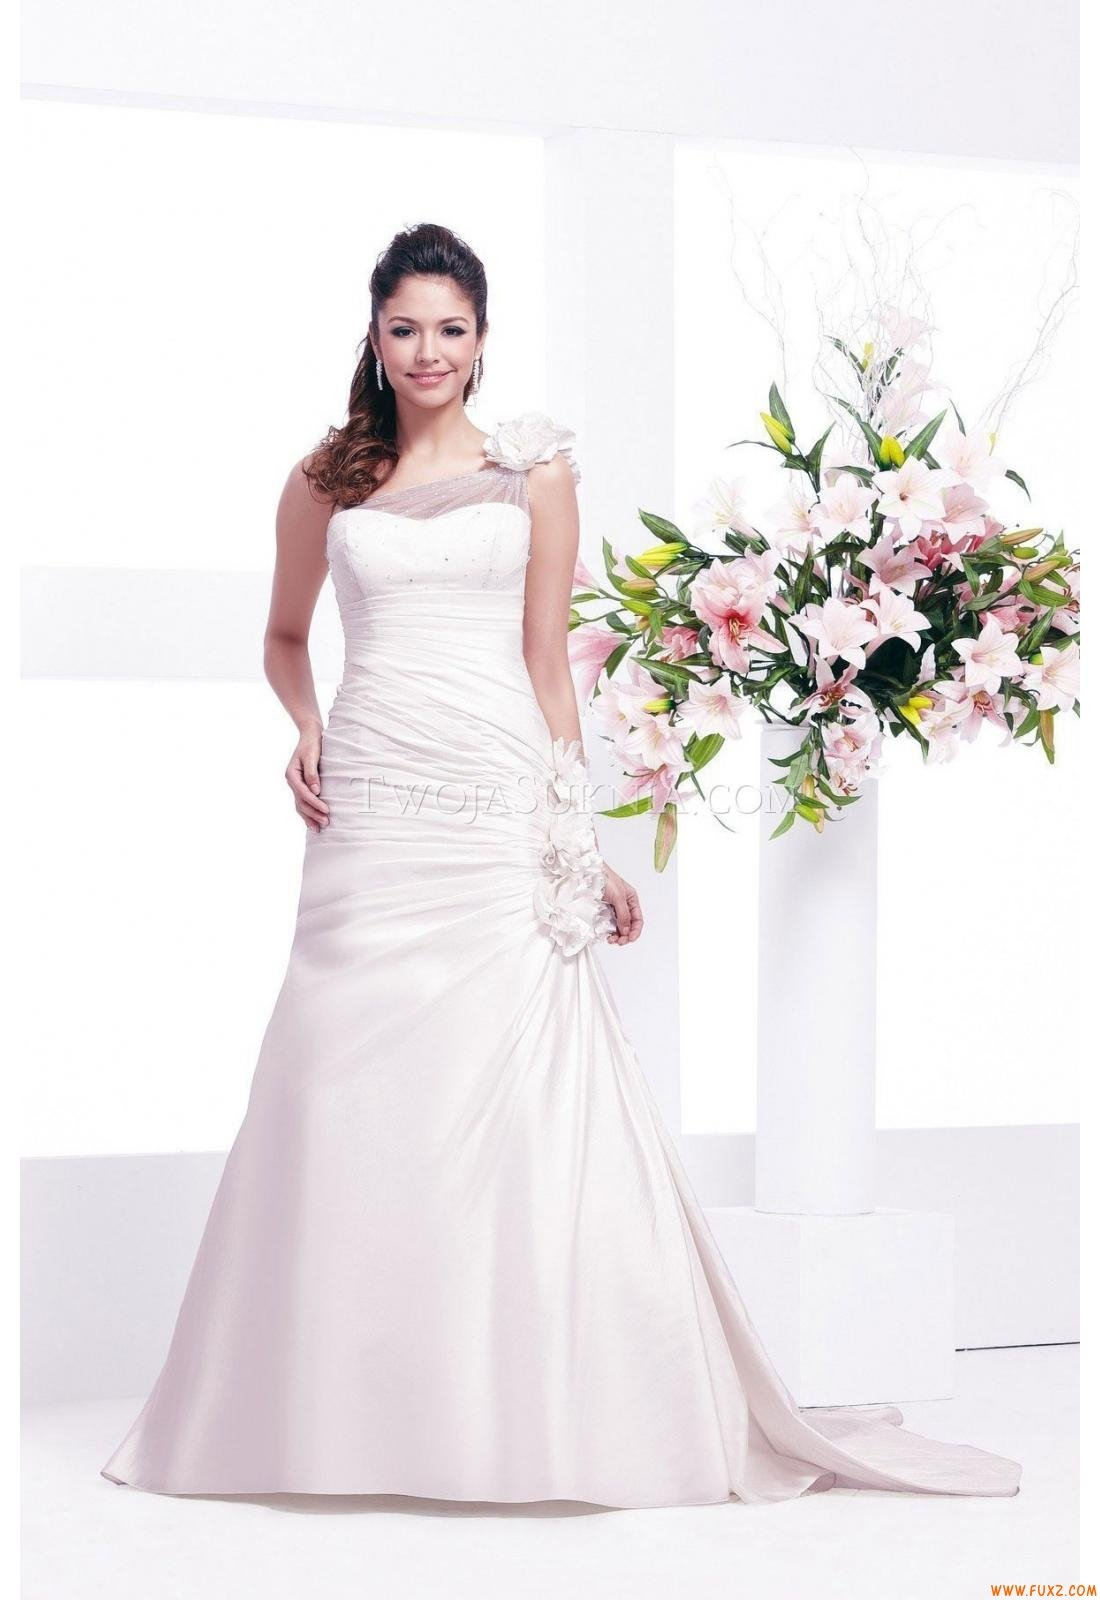 Cheap wedding dresses just arrived veromia wedding dress vr61104 veromia wedding dress vr61107 white ombrellifo Choice Image